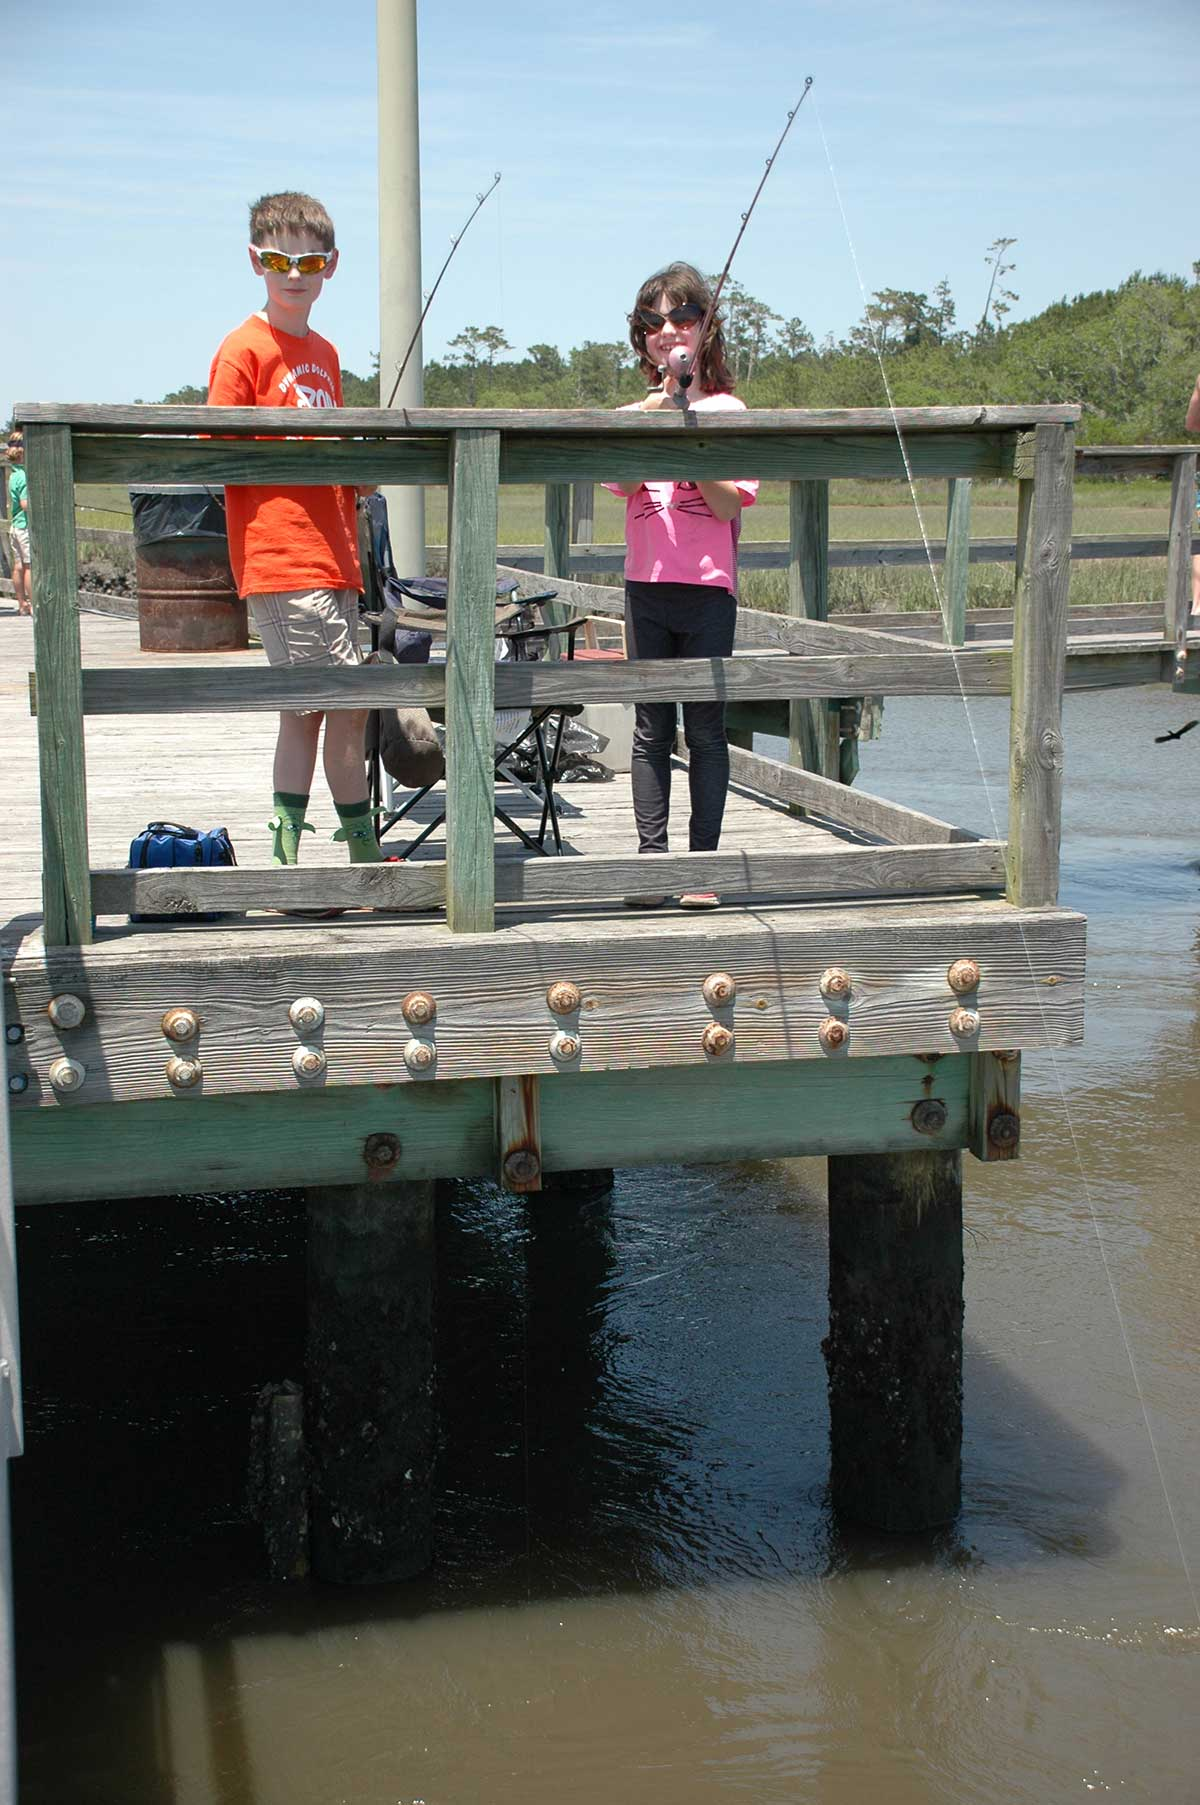 Children fishing off of a public dock